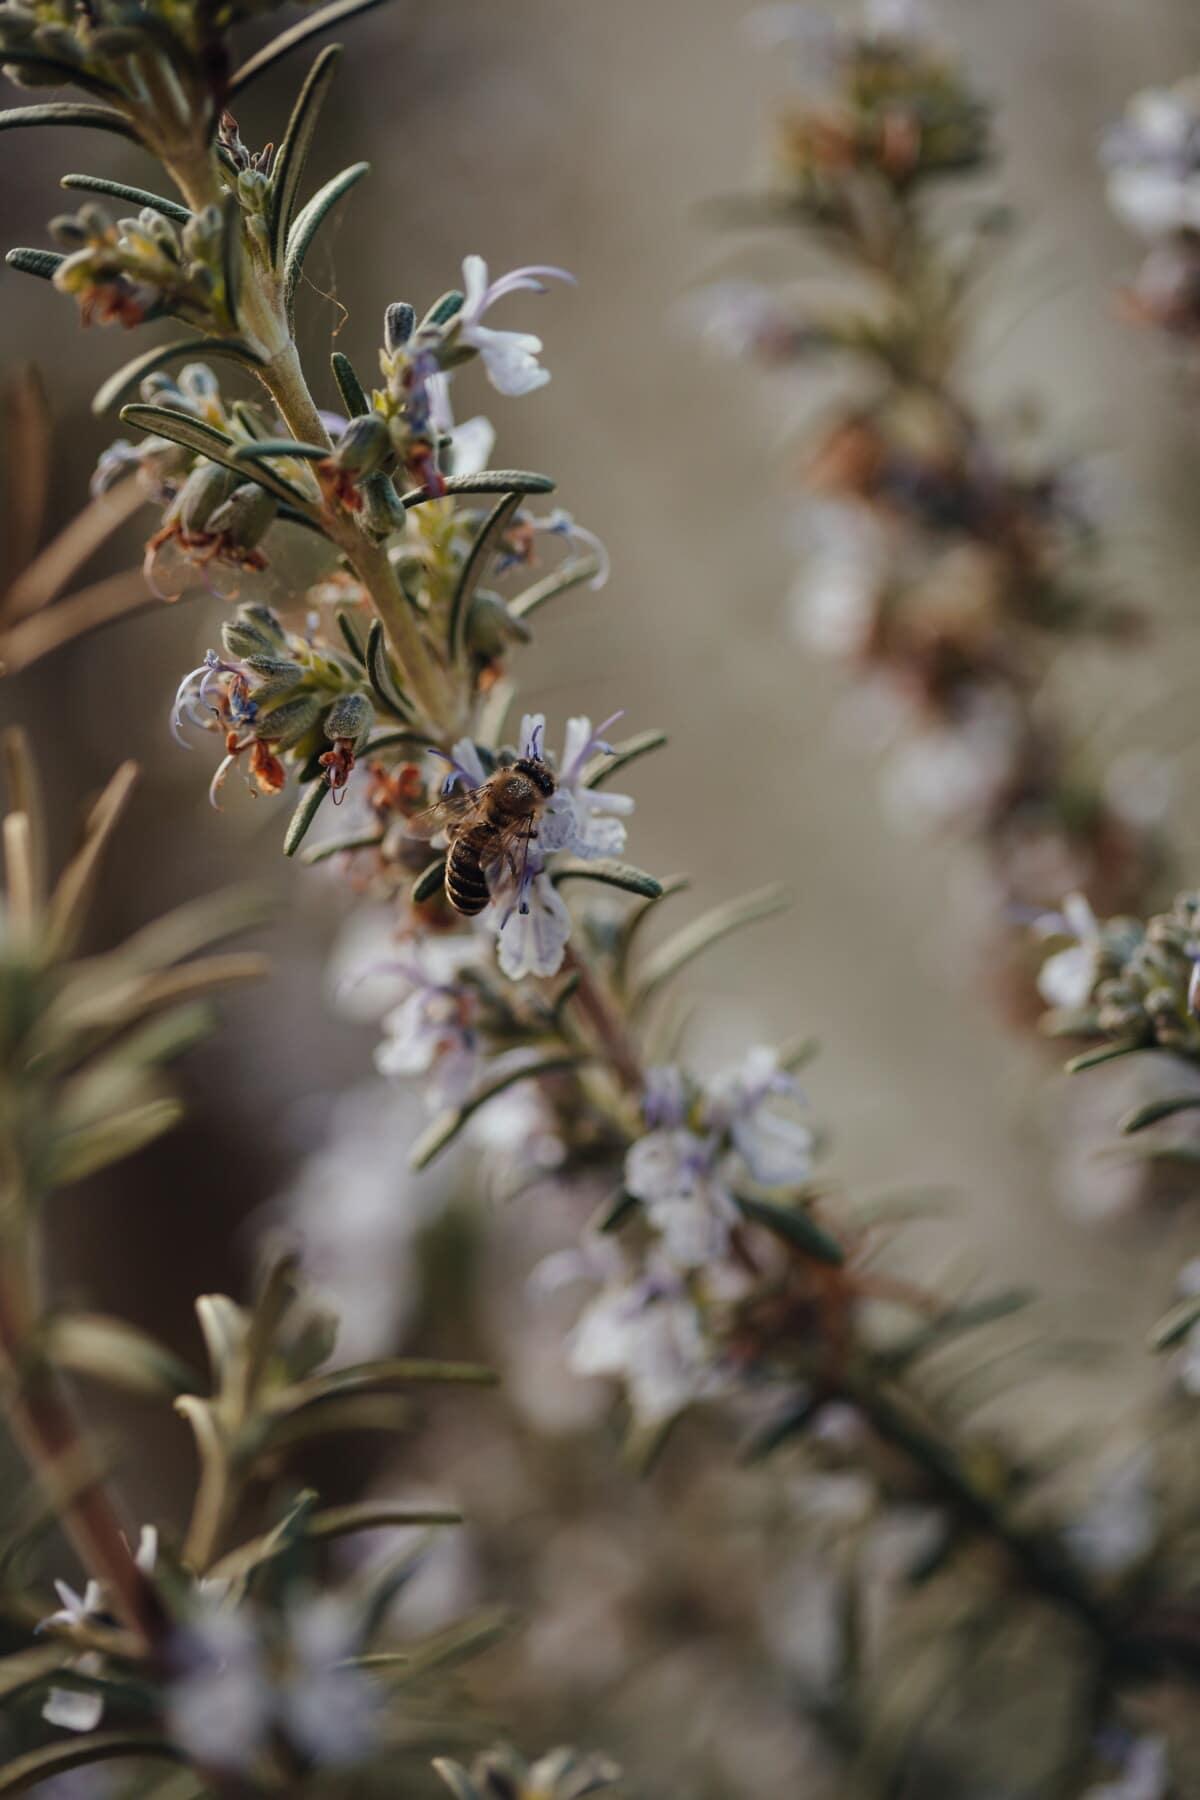 bee, honeybee, spring time, pollinator, pollen, herb, rosemary, aromatic, plant, nature